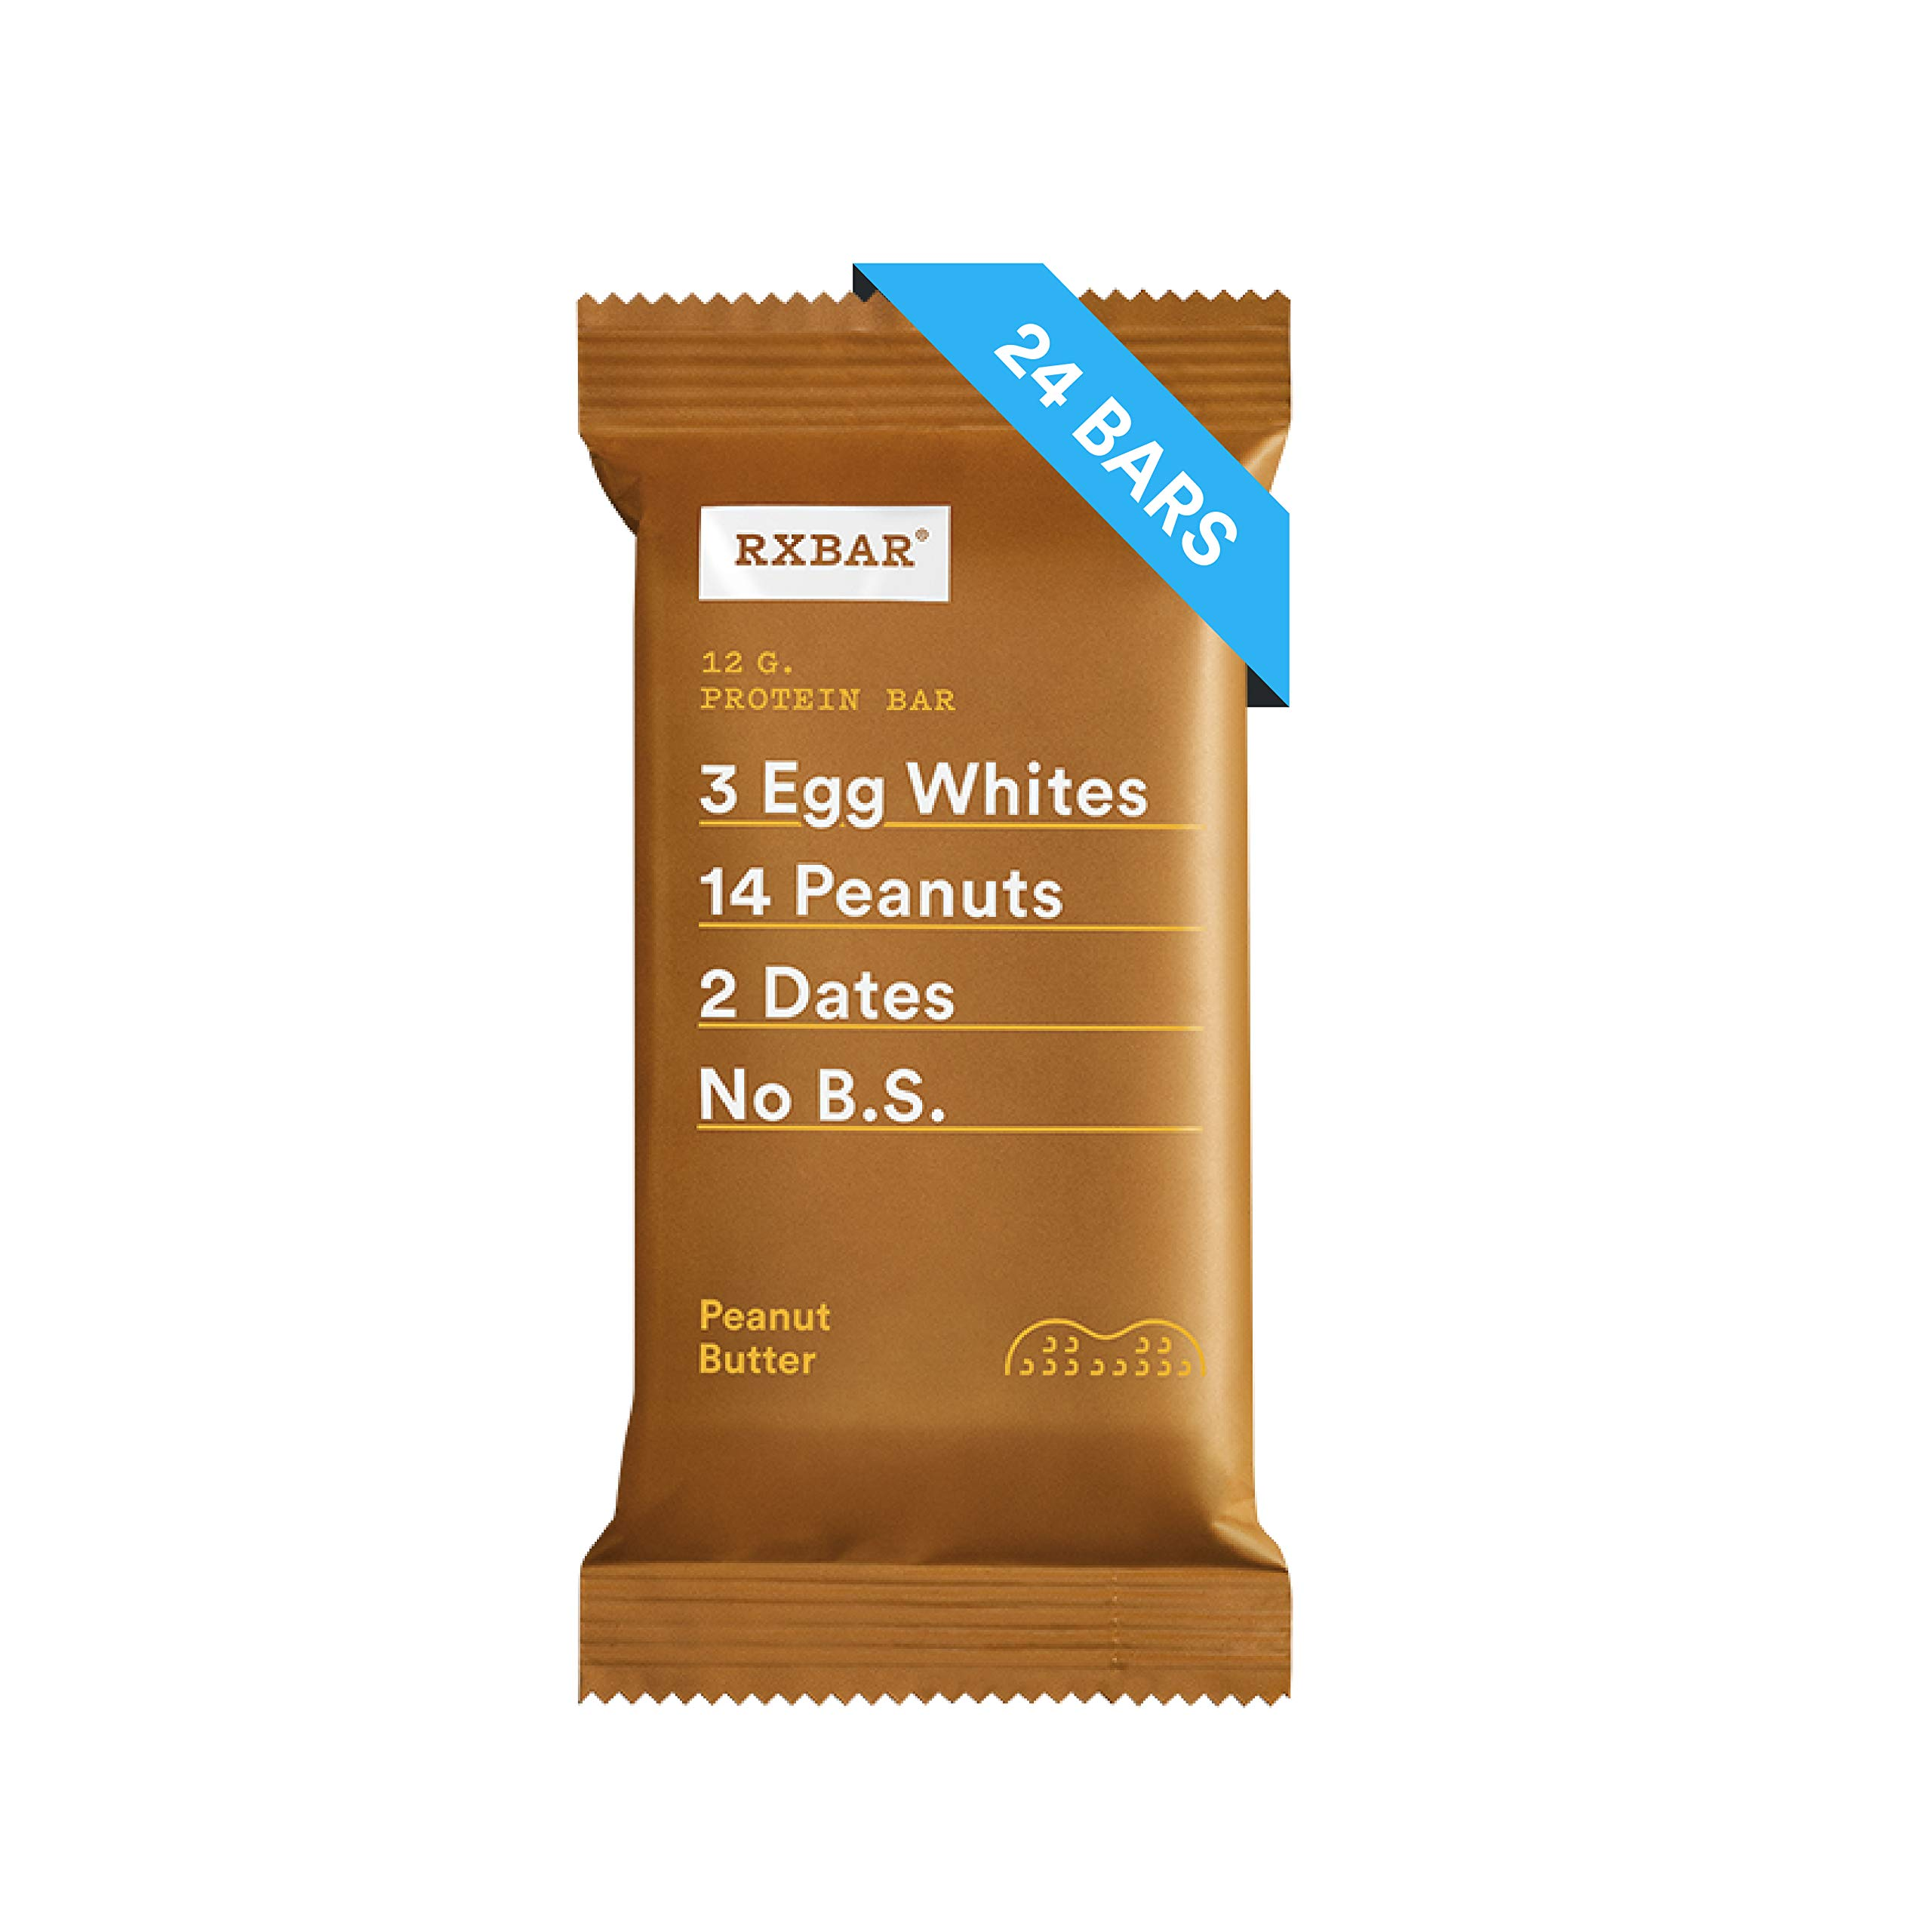 RXBAR Whole Food Protein Bar, Peanut Butter, 1.83 Ounce (Pack of 24)